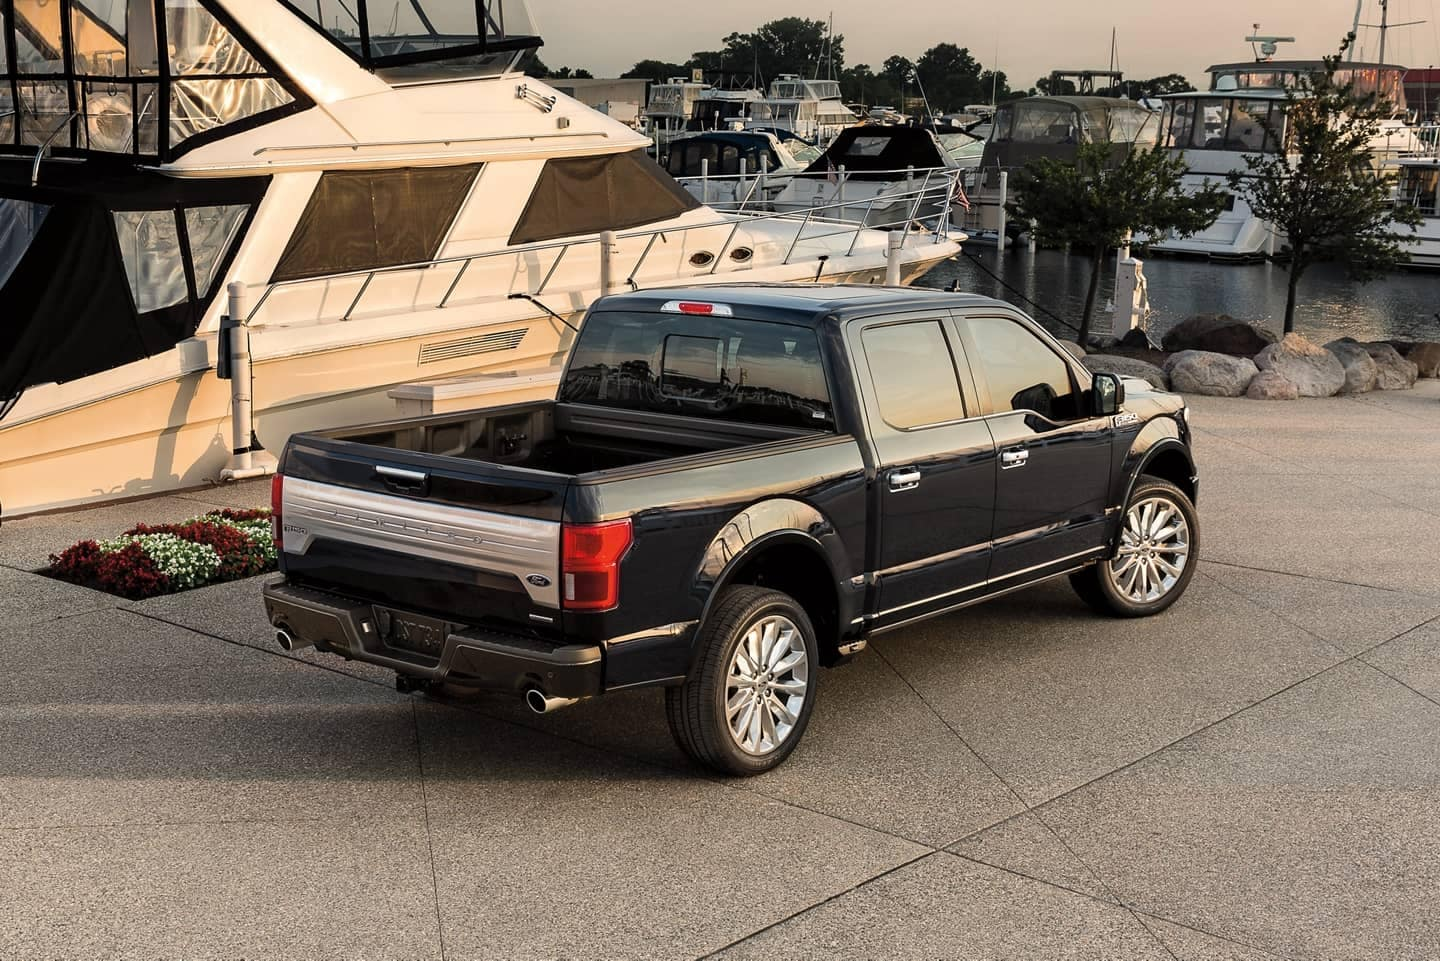 Ford F-150 parked next to boat in marina